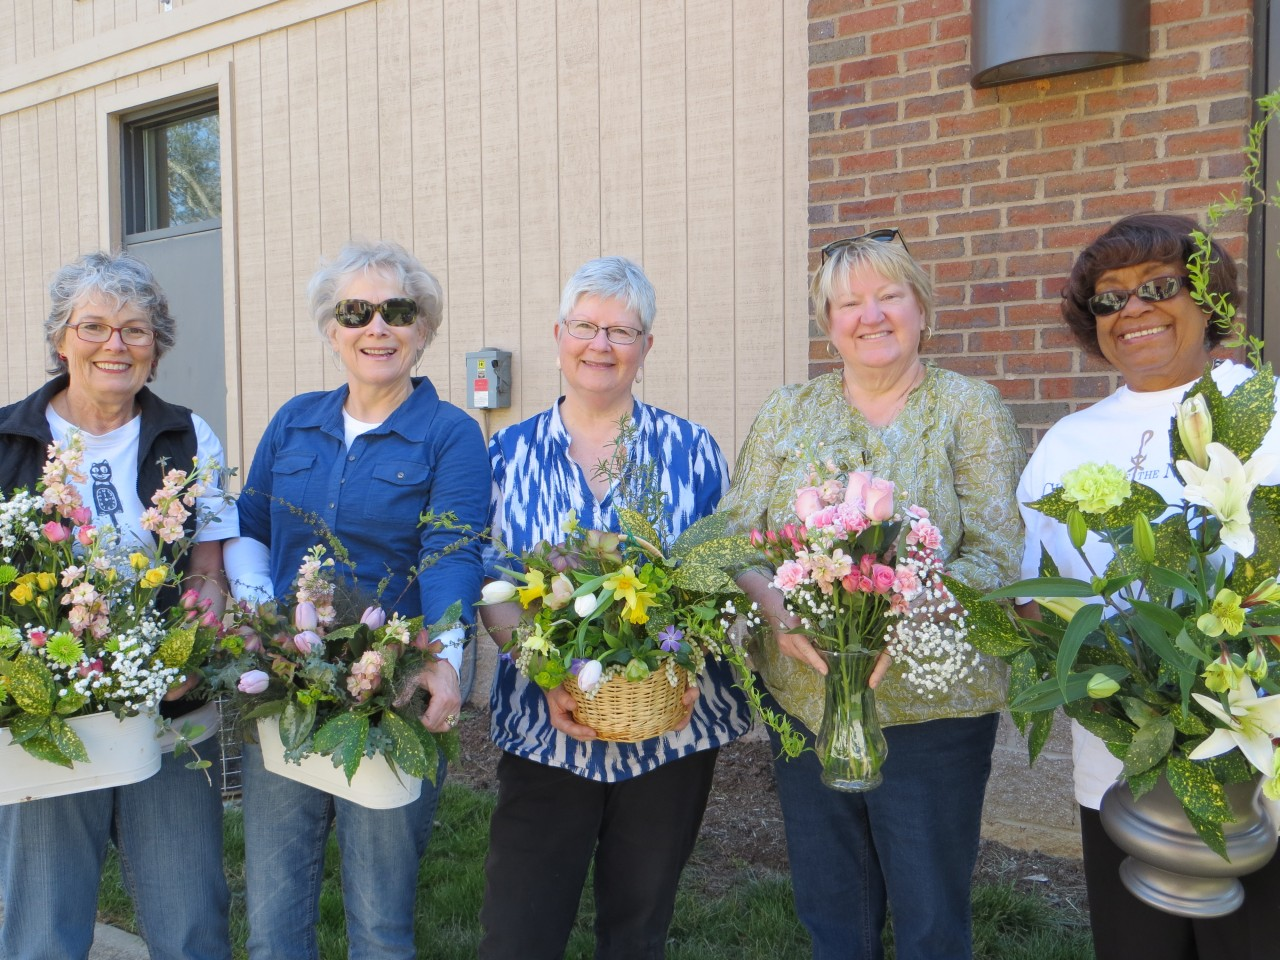 Members of the Flower Guild on their favorite flower day!